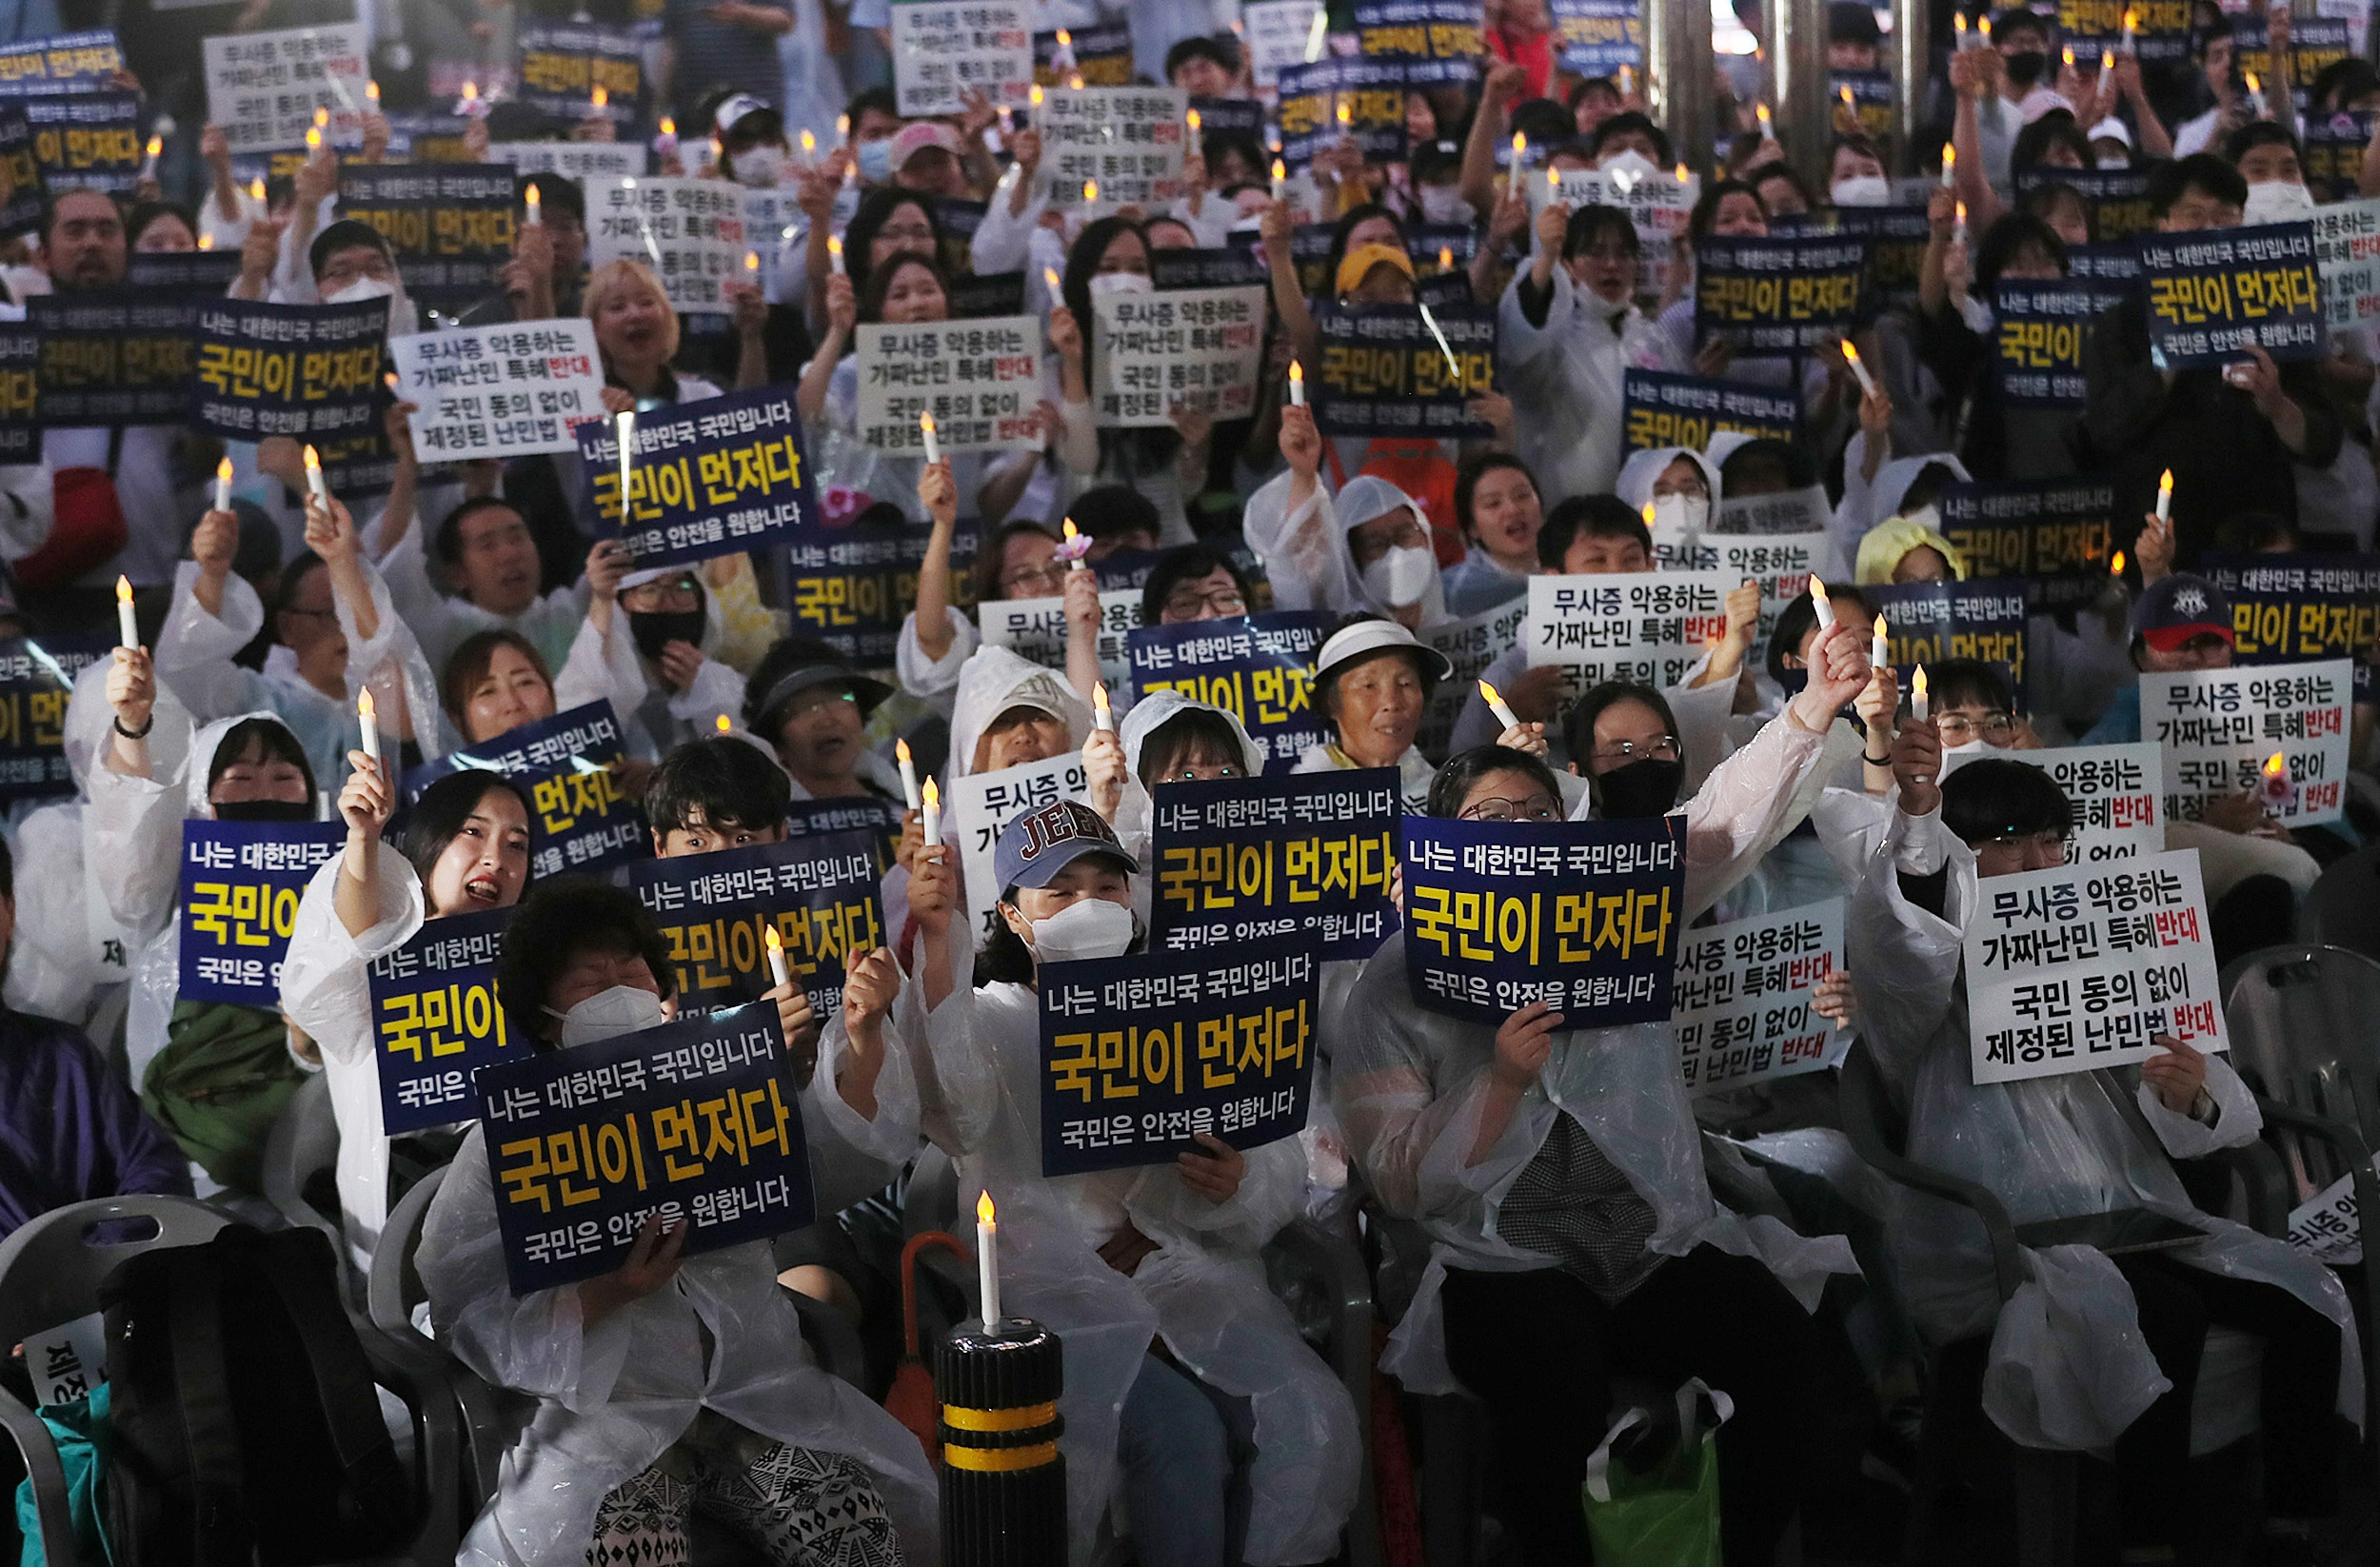 <p>Where does hate and disgust against Refugee come from? Where does this collective blind hatred and disgust of Muslim Refugee come from? One reason why Jeju Island, Yemen Refugee can not easily be accepted seems to be because there is a vague sense of uneasiness among us. Every human being has fear of strangers. We build a defense mechanism with strong fear of what we see for the first time, things we do not have, no experience. In addition to this, all hoaxes and unfounded claims spreading over the Internet and SNS transform fear and fear aggressively into opponents extreme hostility and fear. I can not ignore the strangeness that comes from the difference between different societies and cultures. In addition, our society is a country located on one side of unconsciousness, inferior to Australia purebloodism. I do not know the exclusiveness and the superiority created by the ideology distribution ethnic group and single ethnic group, and it is shedding a trial inside of us. There will be ignorance and prejudice of Muslim, and damage consciousness. Yemen Refugee was not hospitable in this place, but had many reasons to leave the foundation of life to live. Many reasons are entangled like weft and warp threads like this. We are seeing things and phenomena with our own eyes, towards Refugee from Yemen, the aversion feelings are our own appearances projected to them. It is the content that comes out from the column written by Hong Sefa Where did this disgusting feeling come from? I spontaneously struck my knees with a big task to read the sentence. Everyone judges the world by cutting the world from his own point of view. The Yemen Refugee problem should be the same. For anyone it is a problem that can not be compromised with human beings. Now in the Republic of Korea Refugee is not a story of the Refugee problem, it seems to be our story, our society has always been unequal, irrational, it was a society in which the wounds were not healed Due to such a social proble